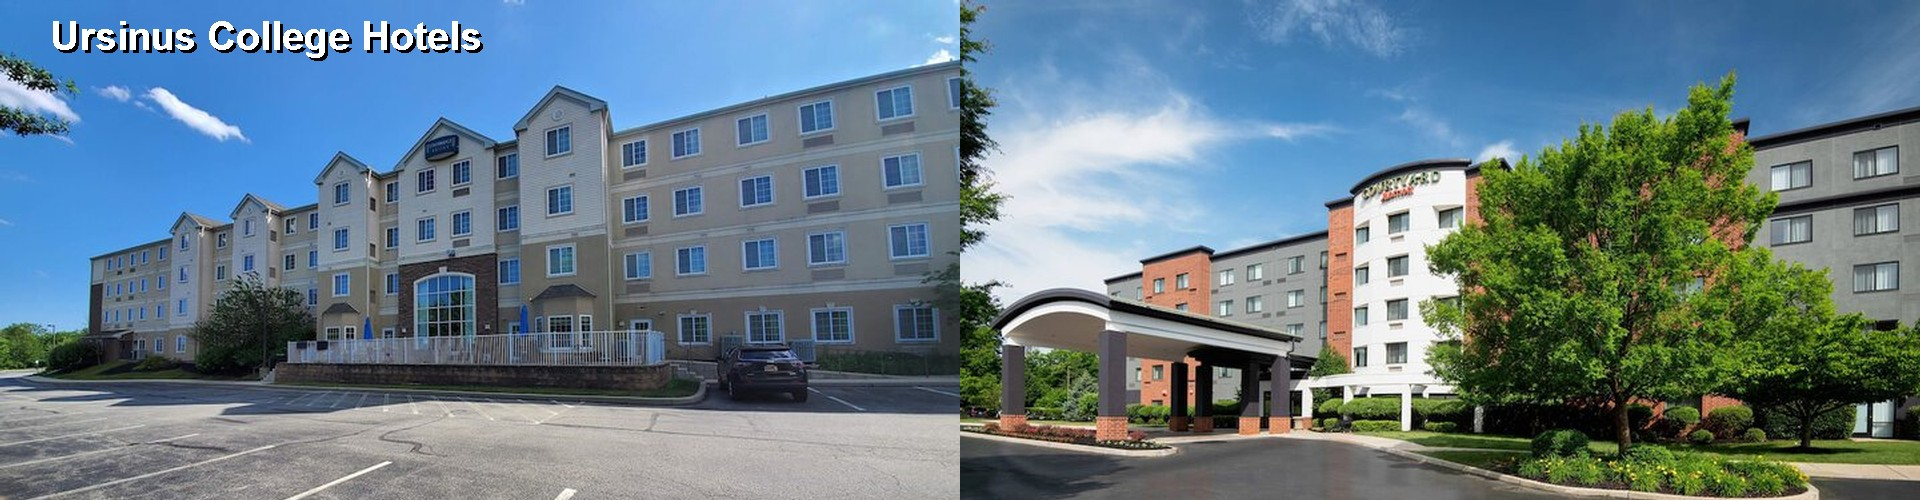 5 Best Hotels Near Ursinus College